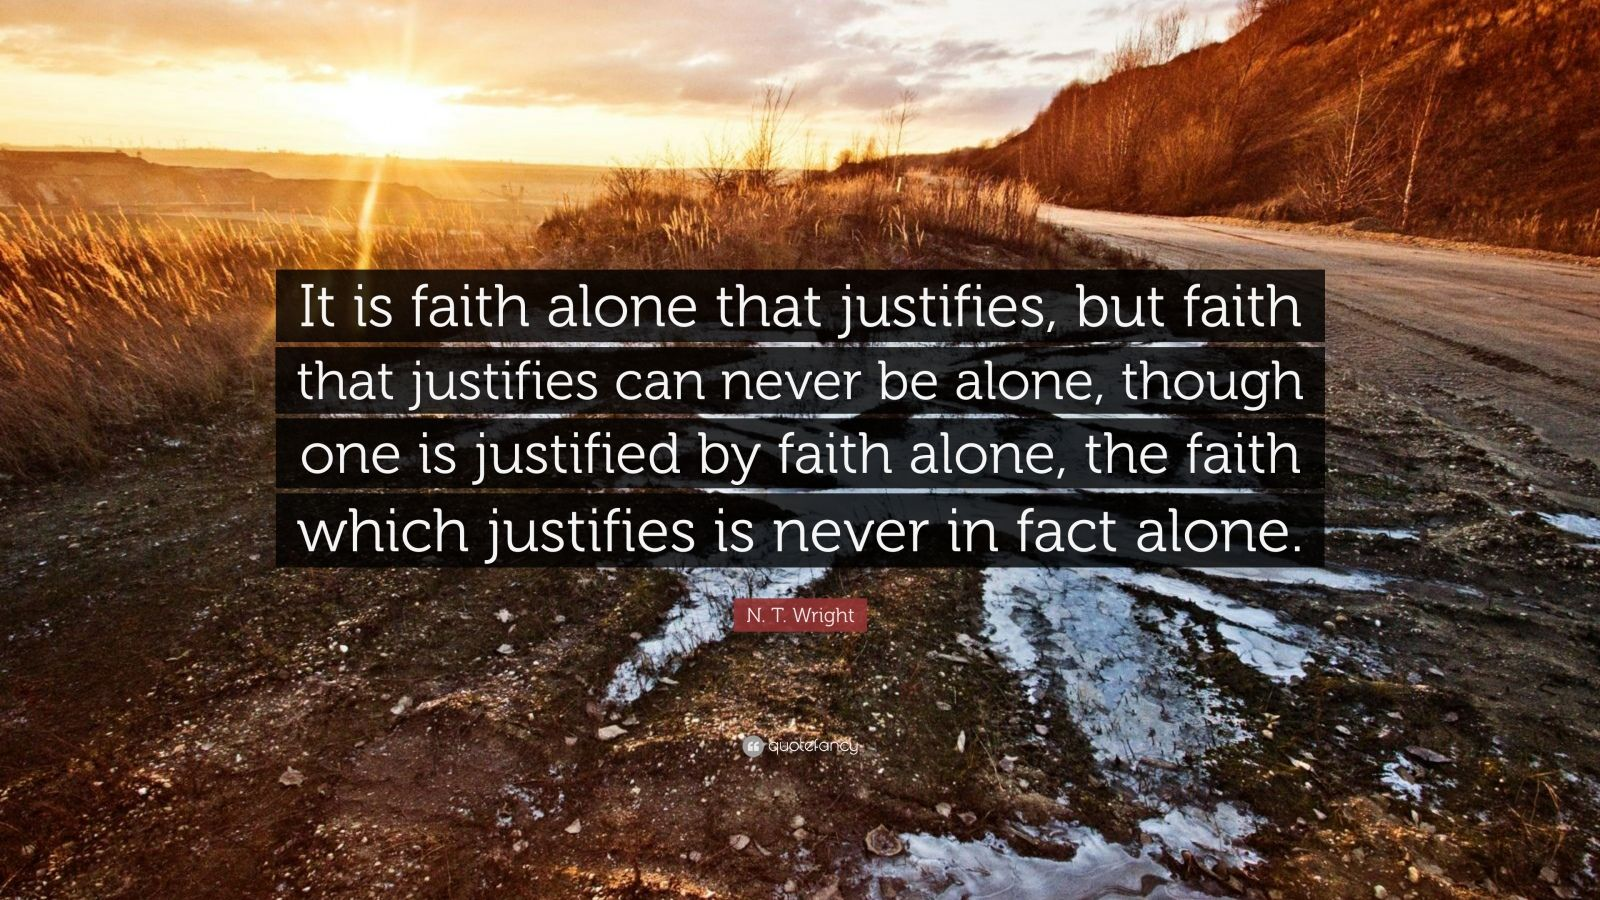 """N. T. Wright Quote: """"It is faith alone that justifies, but faith that justifies can never be alone, though one is justified by faith alone, the faith which justifies is never in fact alone."""""""